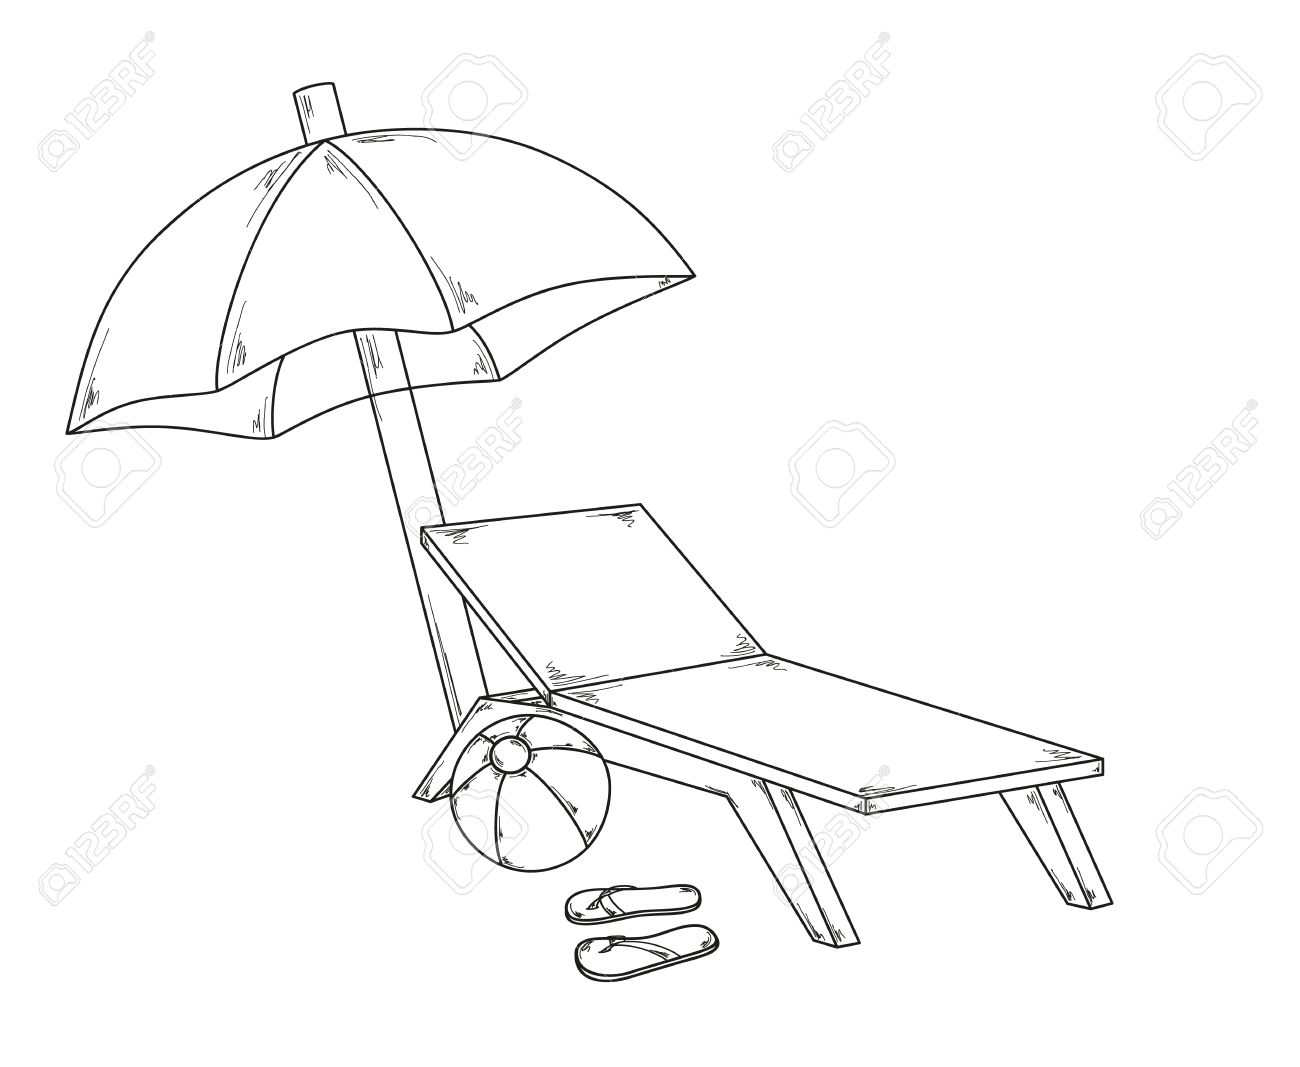 Beach chair and umbrella black and white - Parasol Flops Ball And Chair Sketch Stock Vector 29385877